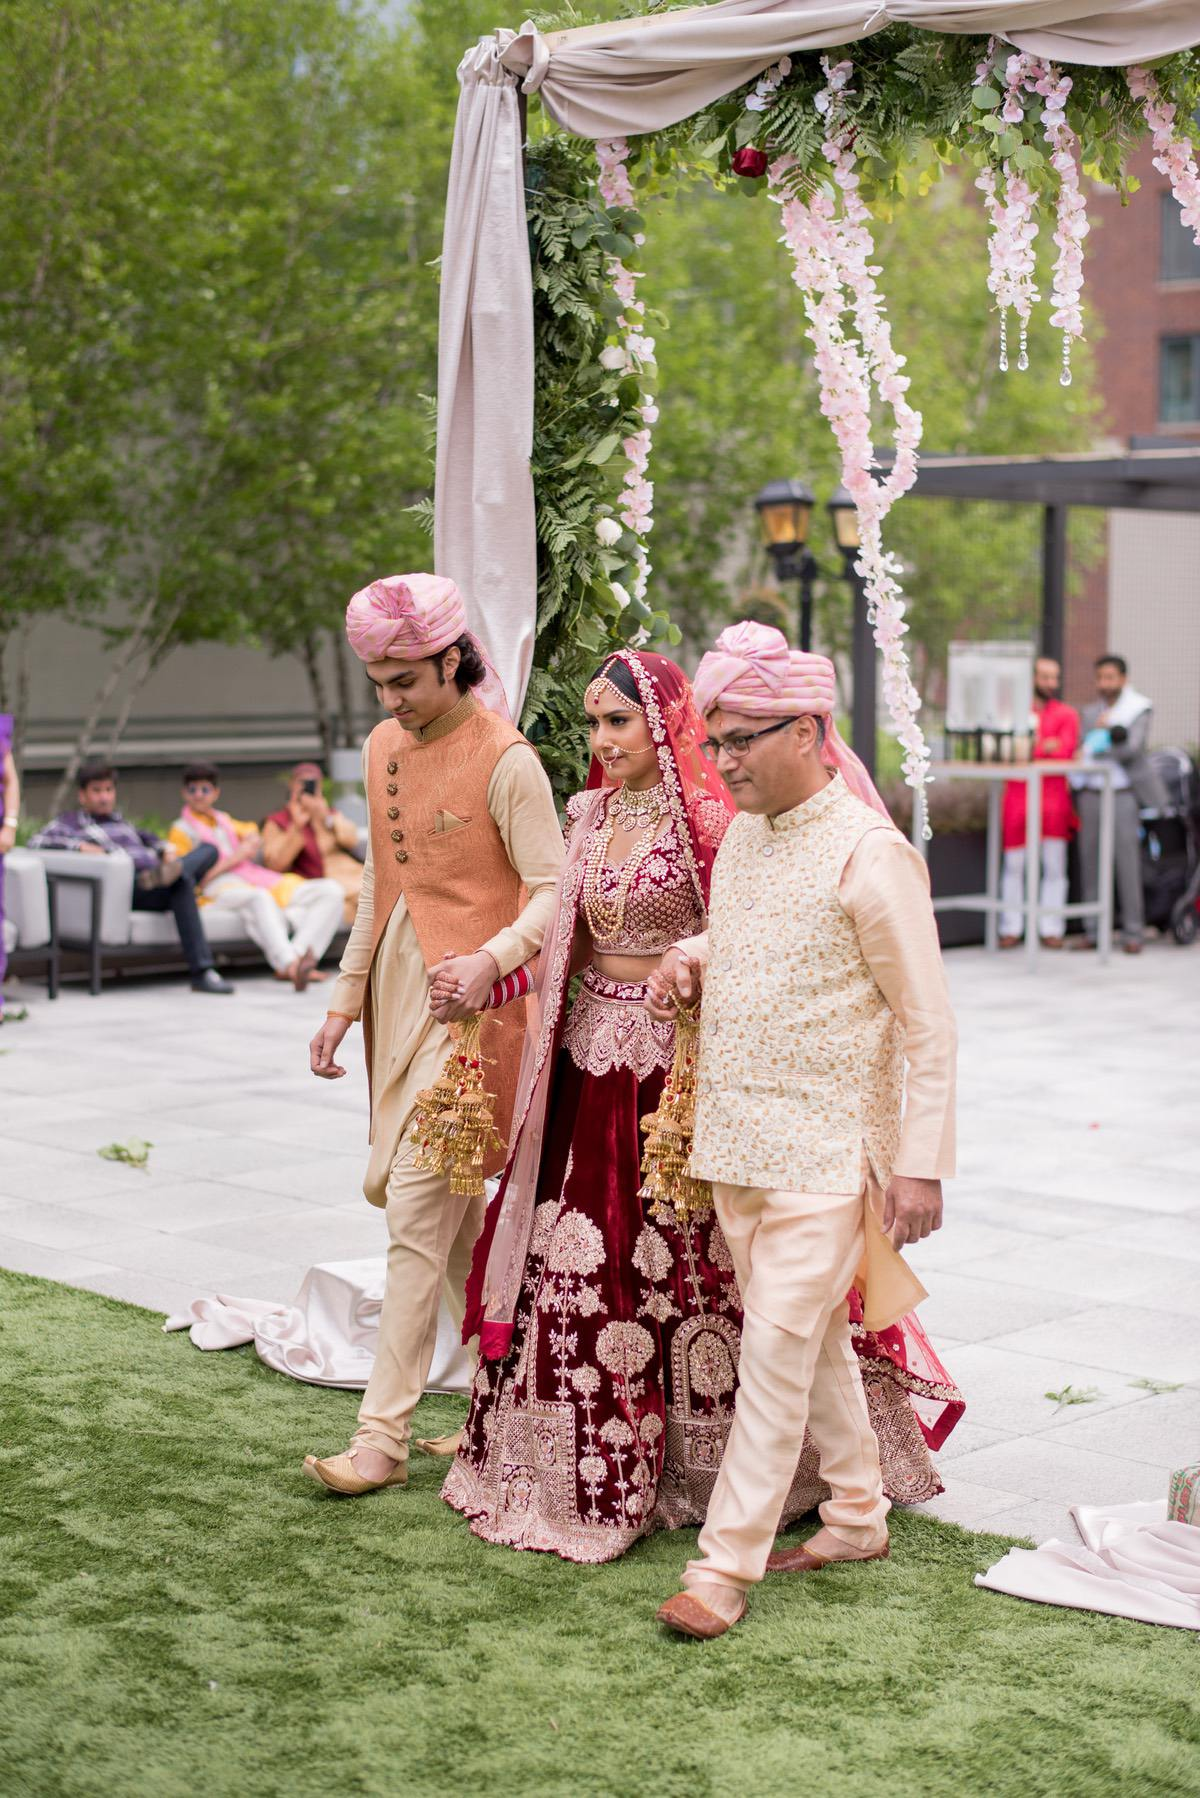 Le_Cape_Weddings_-_Serena_-_Chicago_South_Asian_Wedding_-_Ceremony_--39.jpg